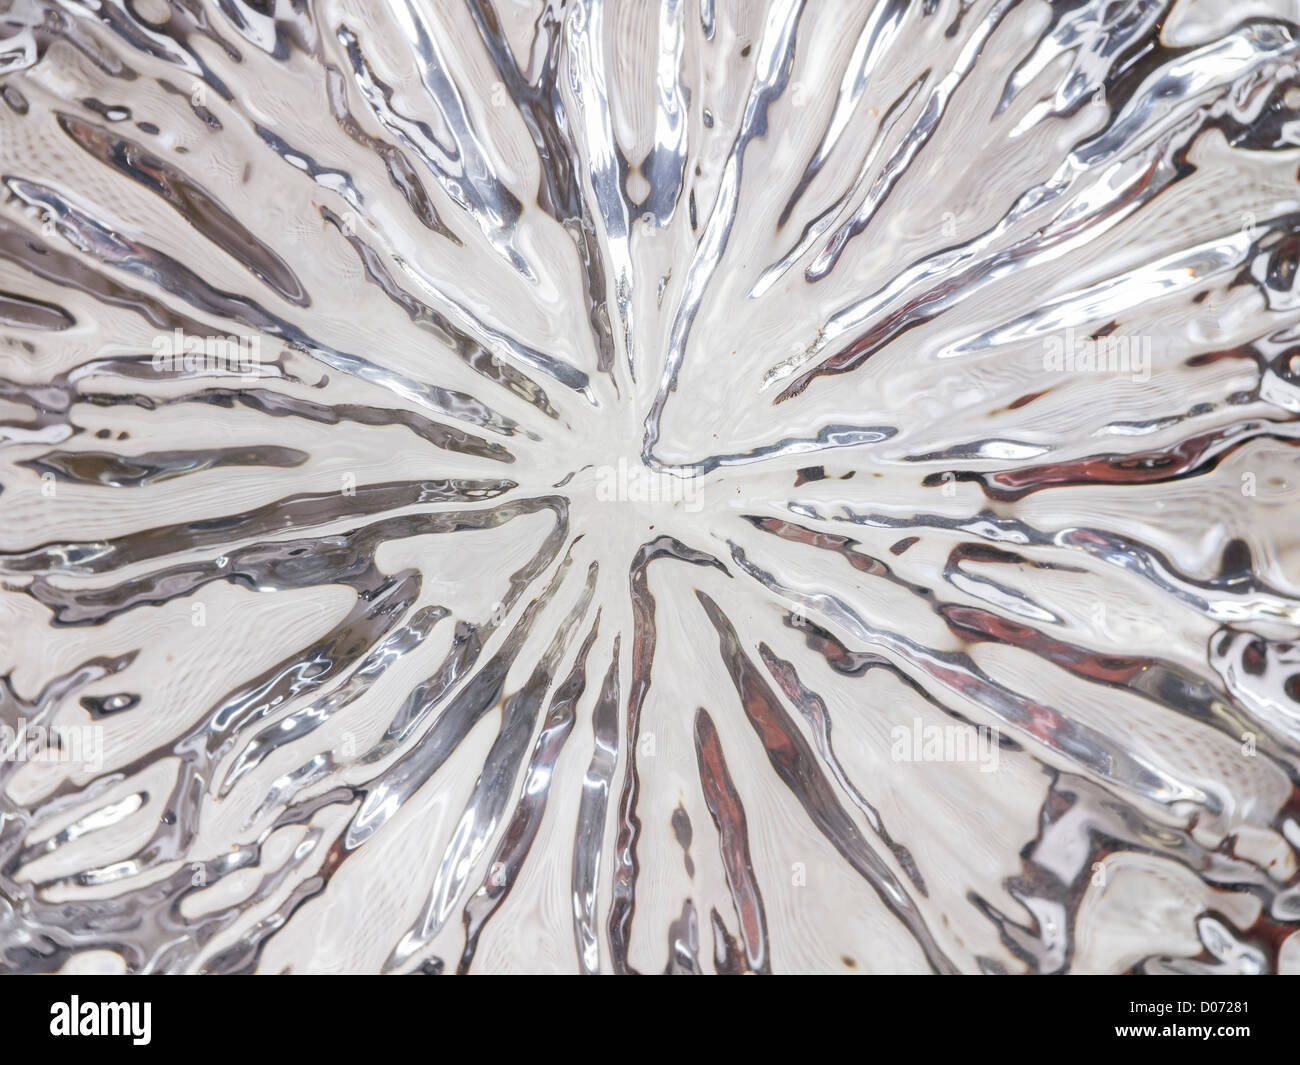 The pattern at the bottom of a lead crystal whisky glass. - Stock Image